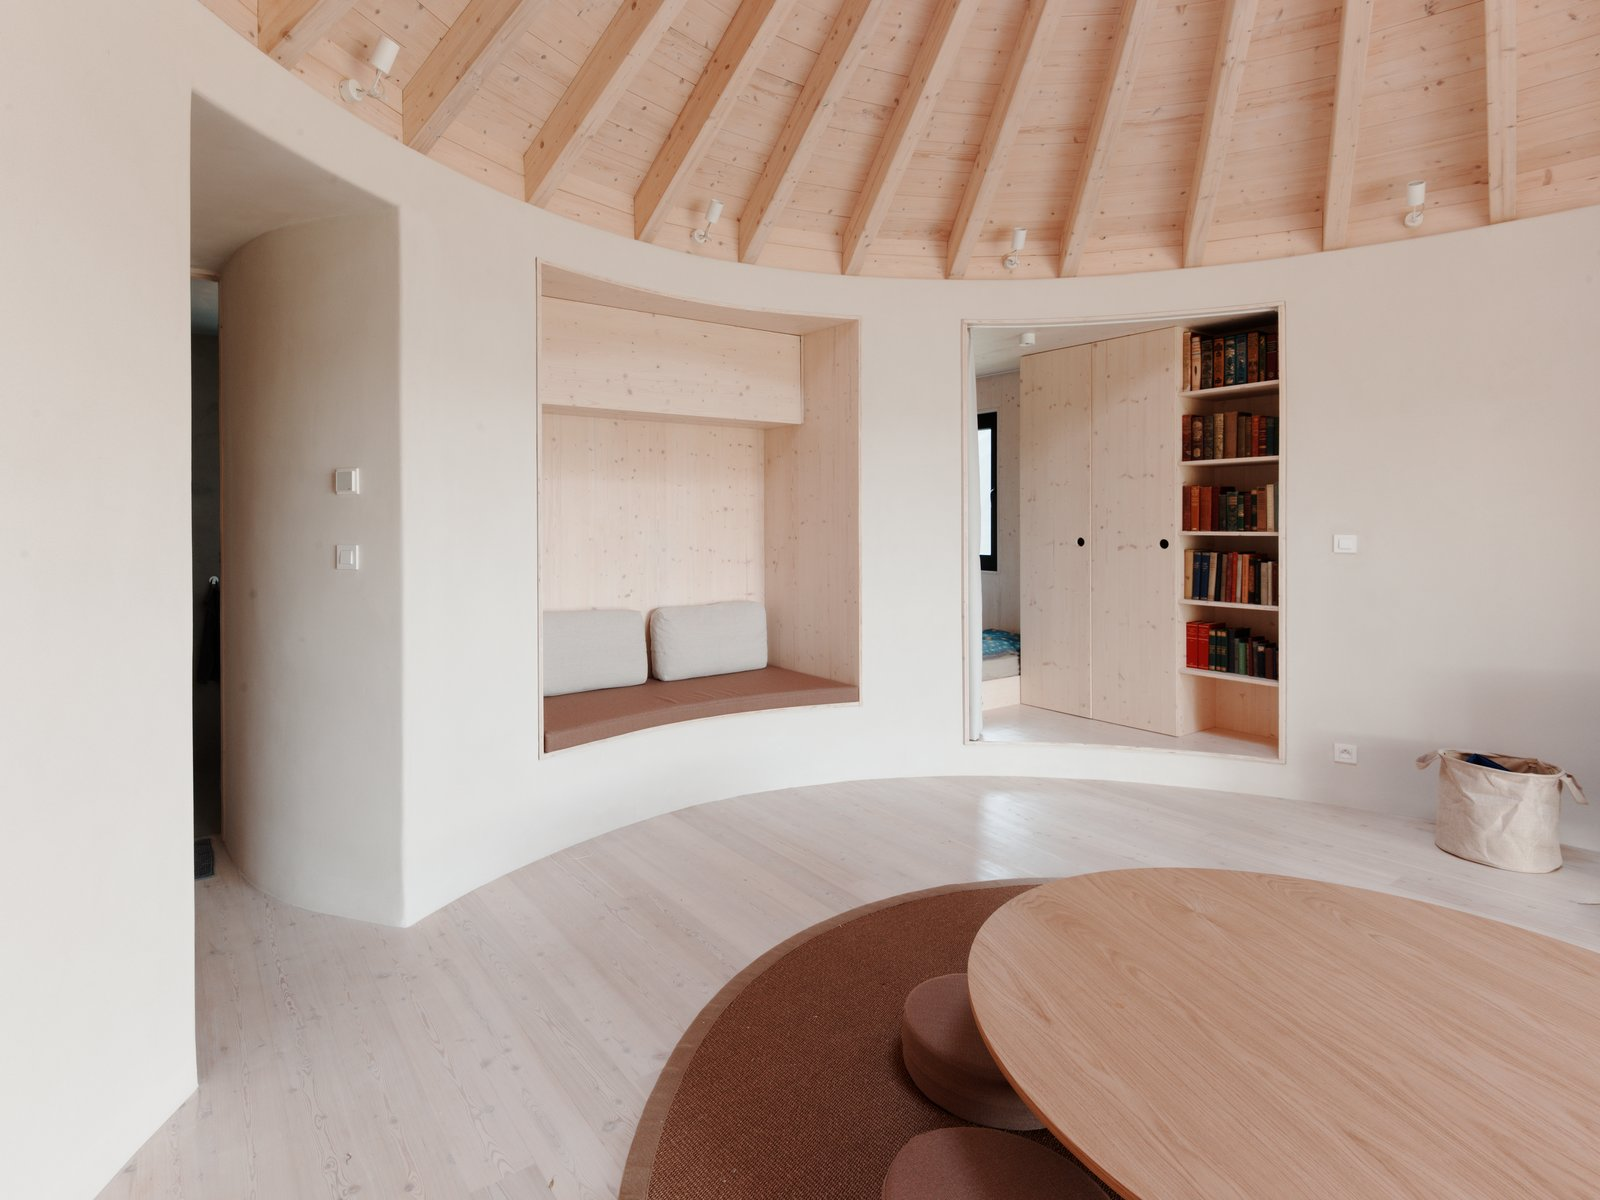 Living Room, Table, Bench, Light Hardwood Floor, Wall Lighting, Rug Floor, and Bookcase From the main room, passageways lead to the bedroom and bathroom.  Photos from This Serene Cabin in Slovakia Takes the Shape of a Yurt